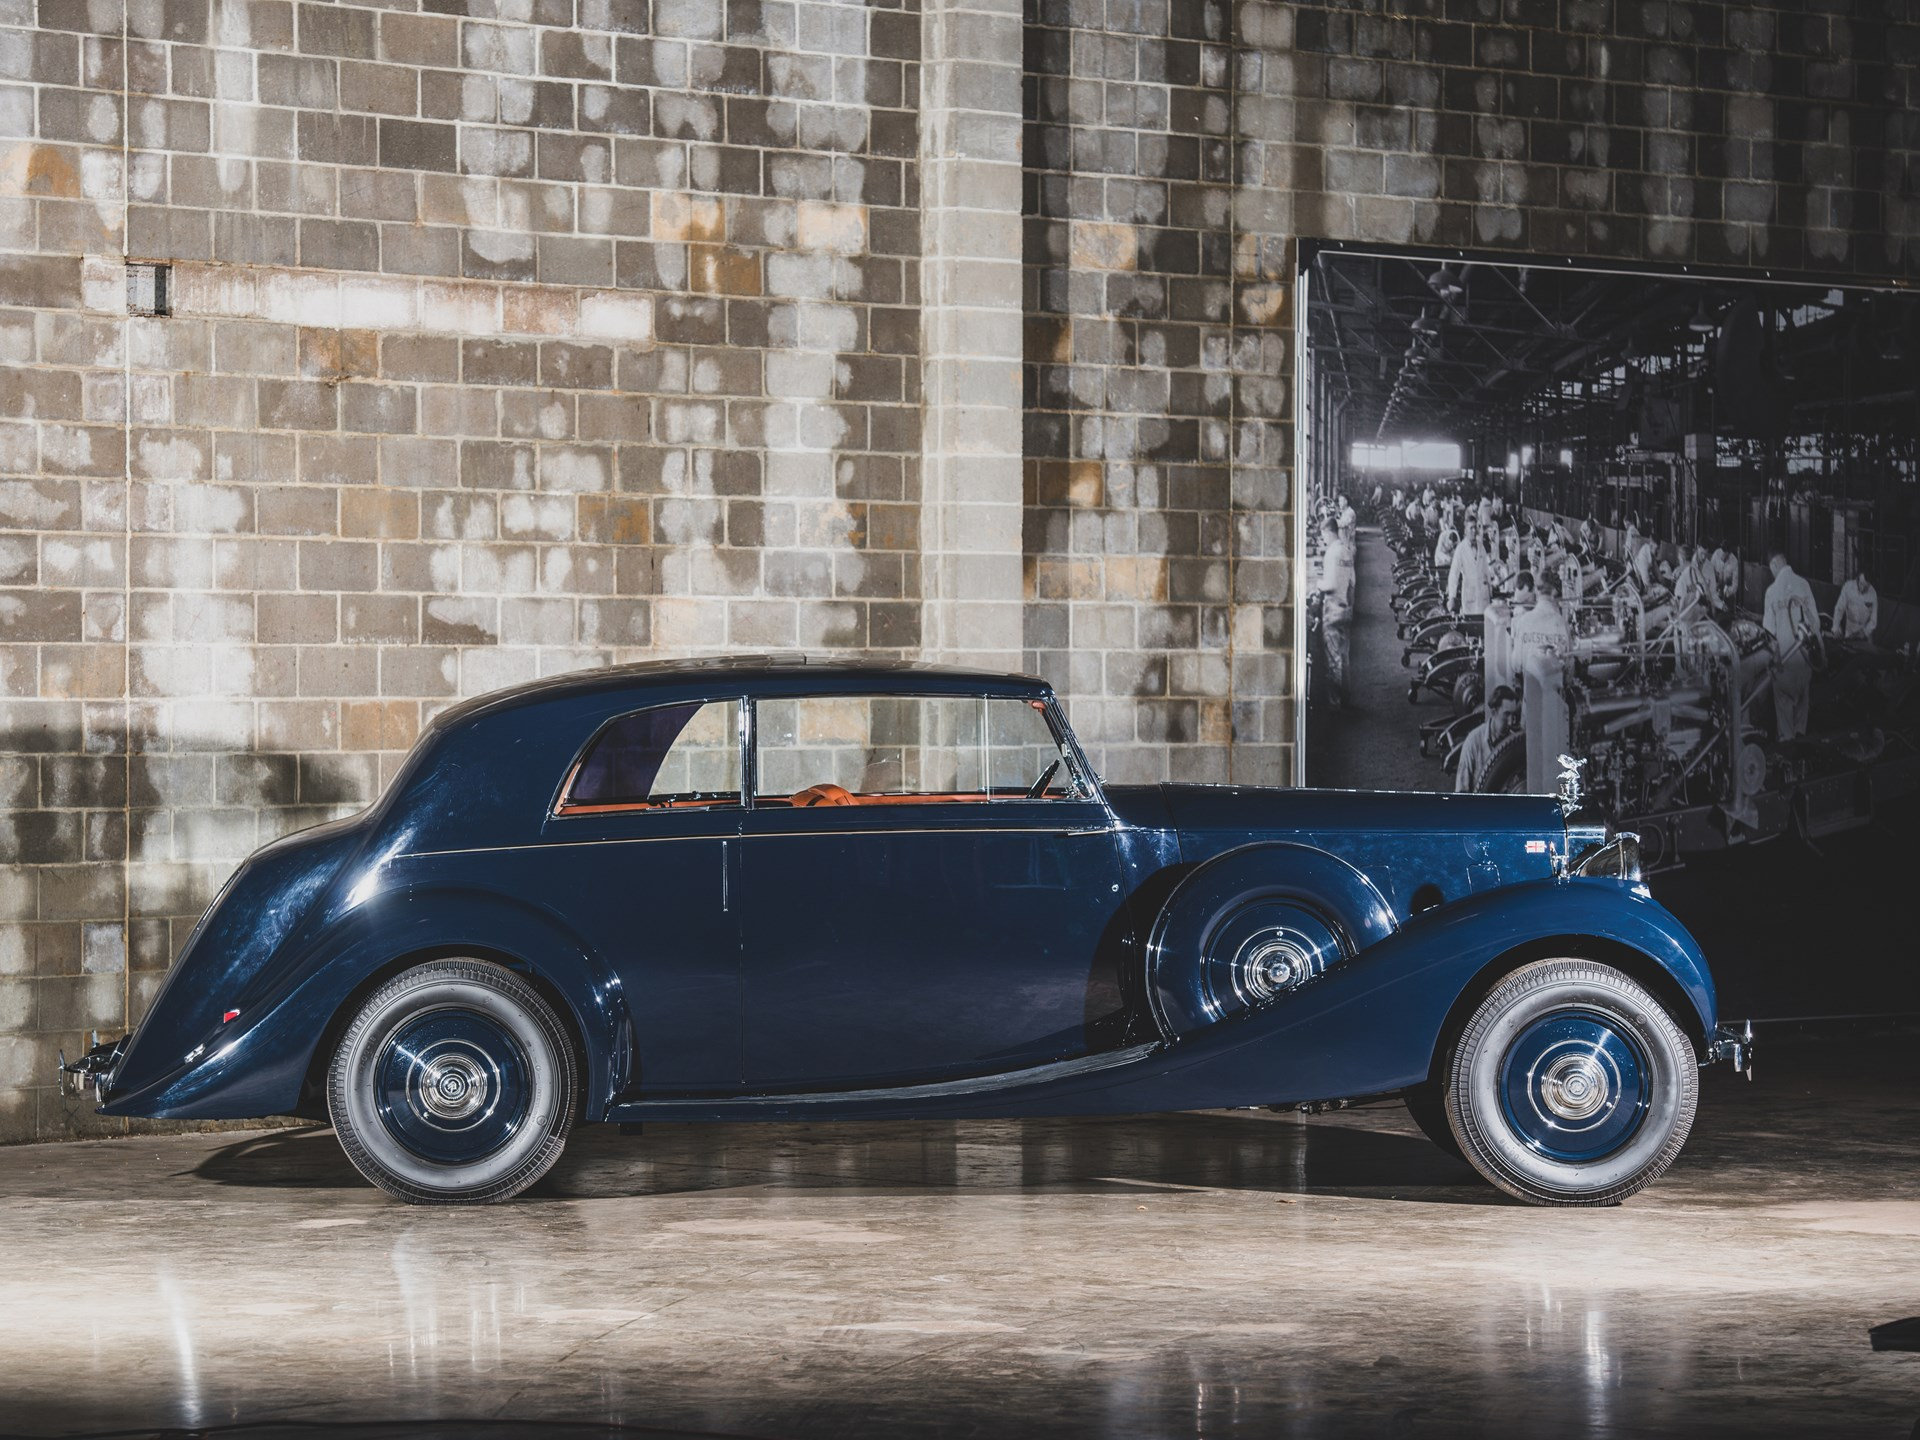 1938 Rolls-Royce Phantom III 'Parallel Door' Saloon Coupe by James Young